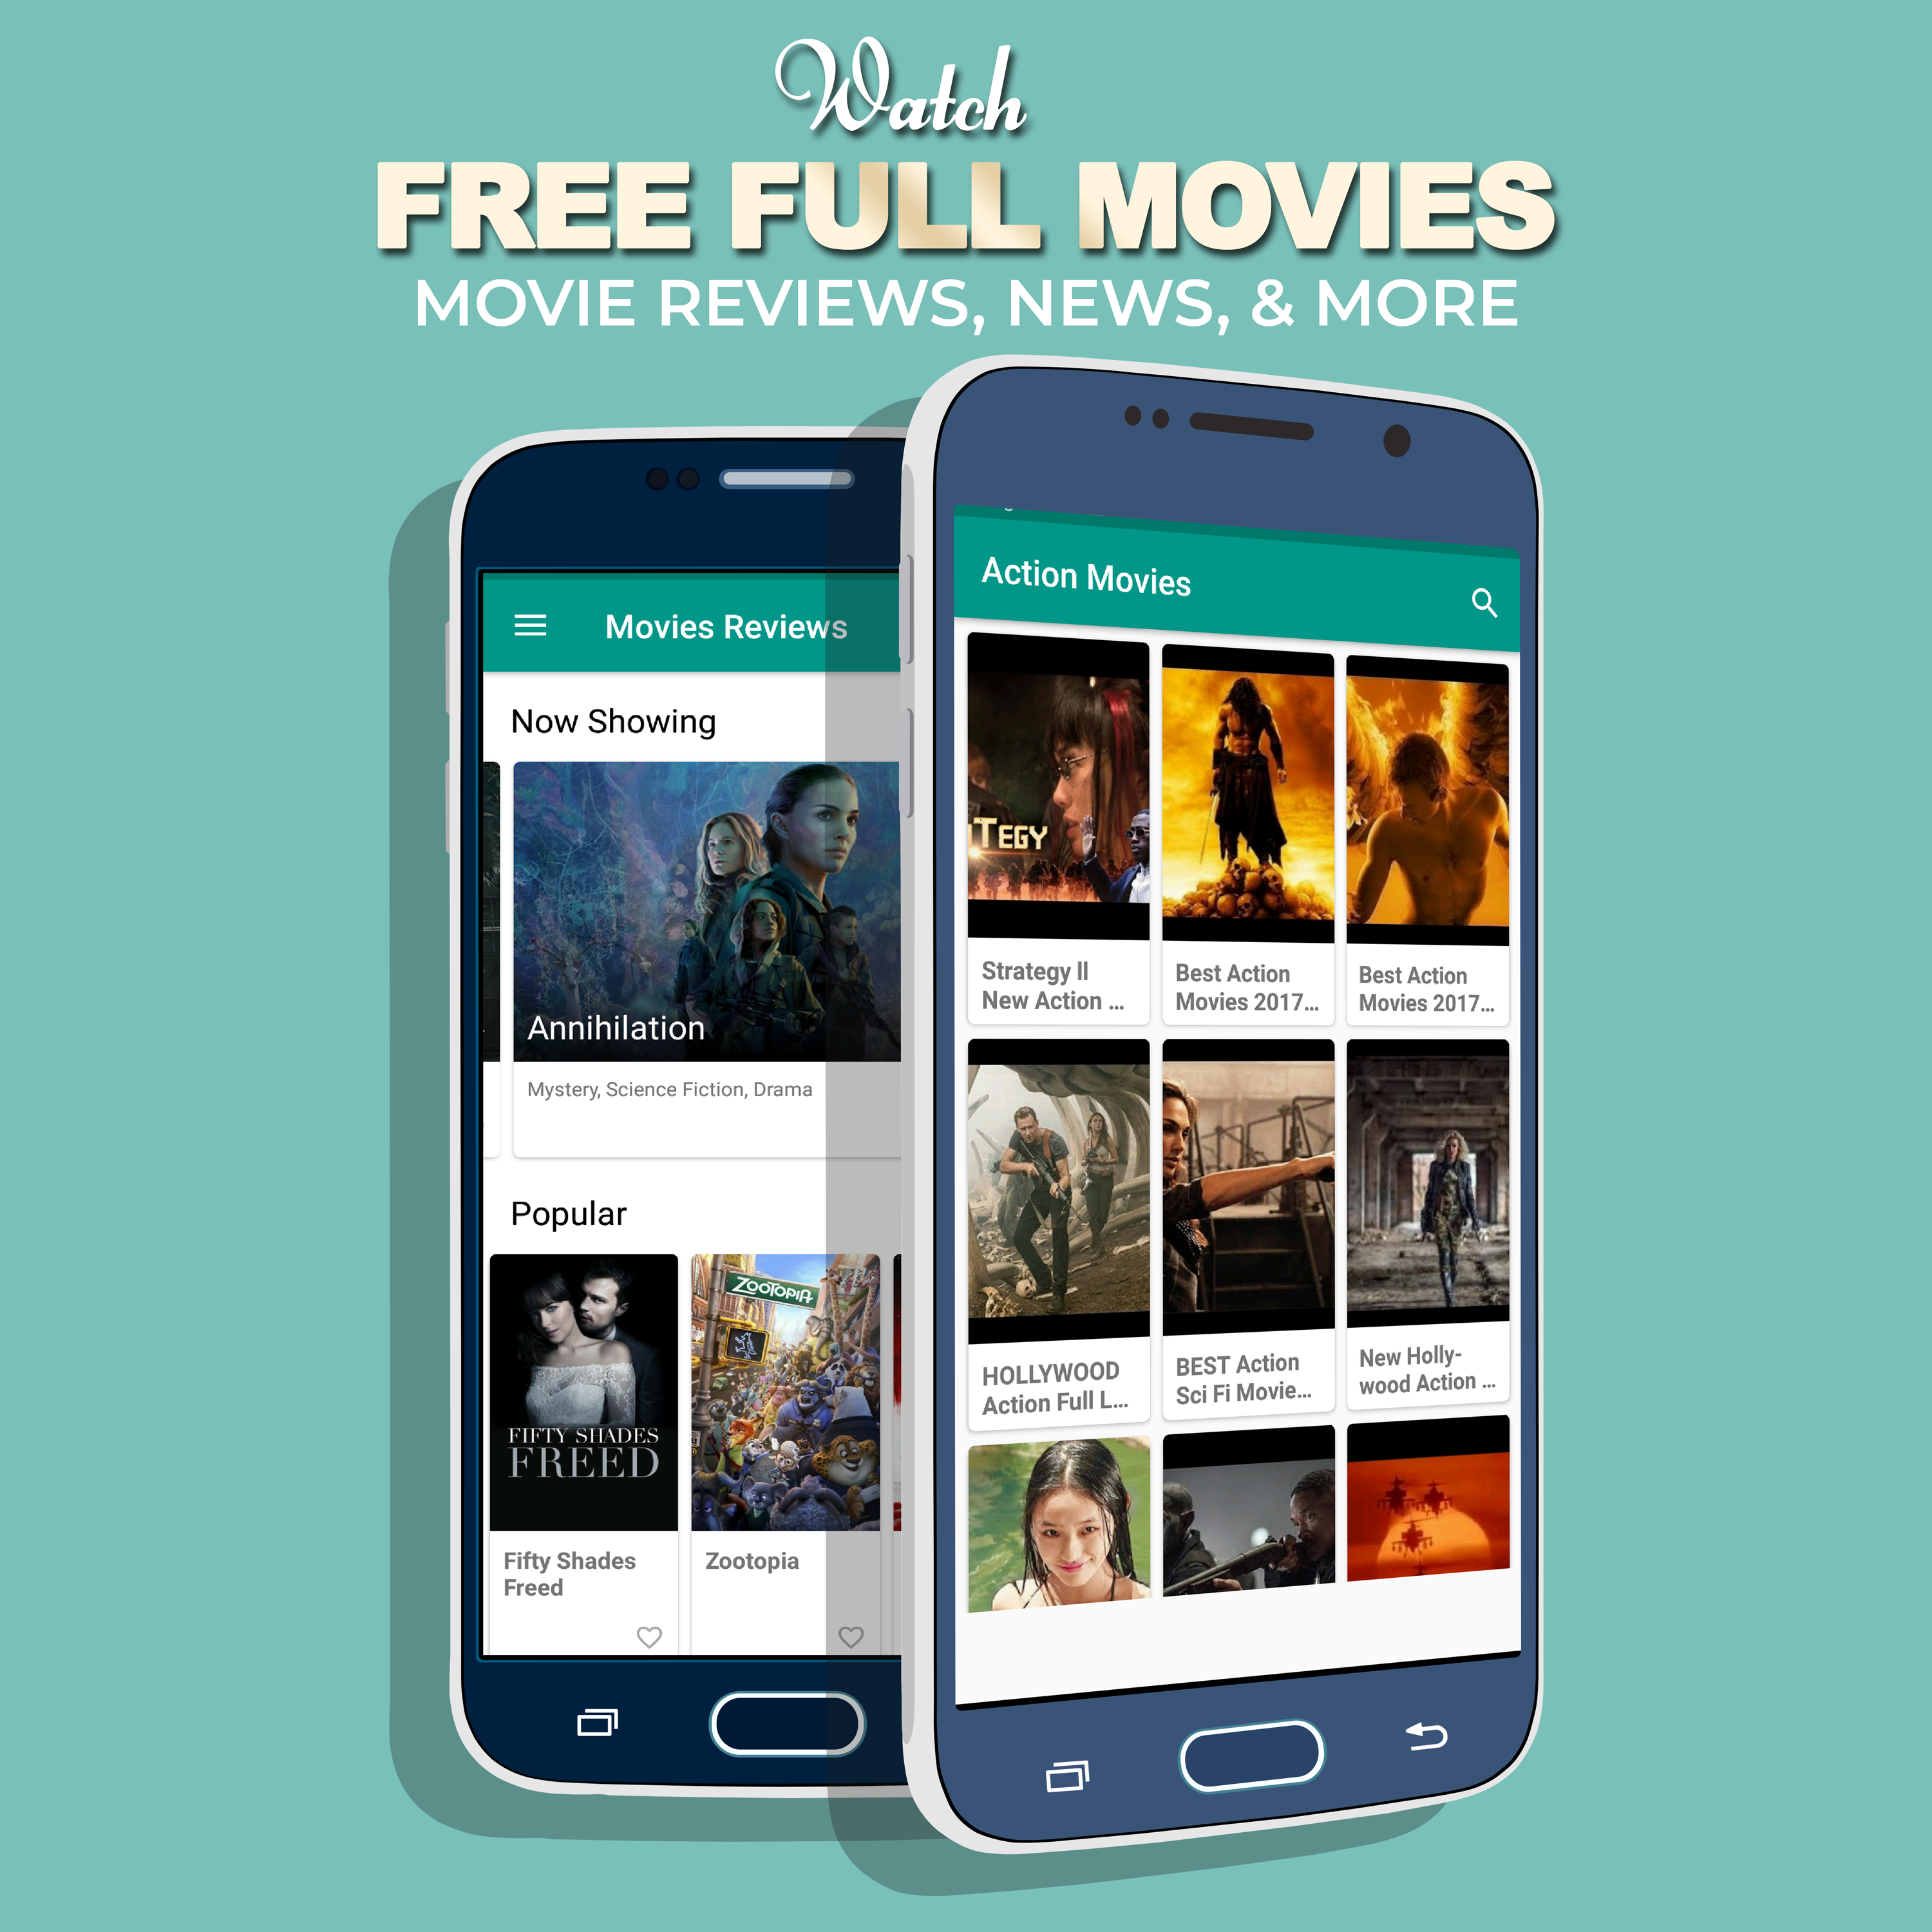 beste apps om films gratis op android te bekijken aimee 39 s info blog. Black Bedroom Furniture Sets. Home Design Ideas